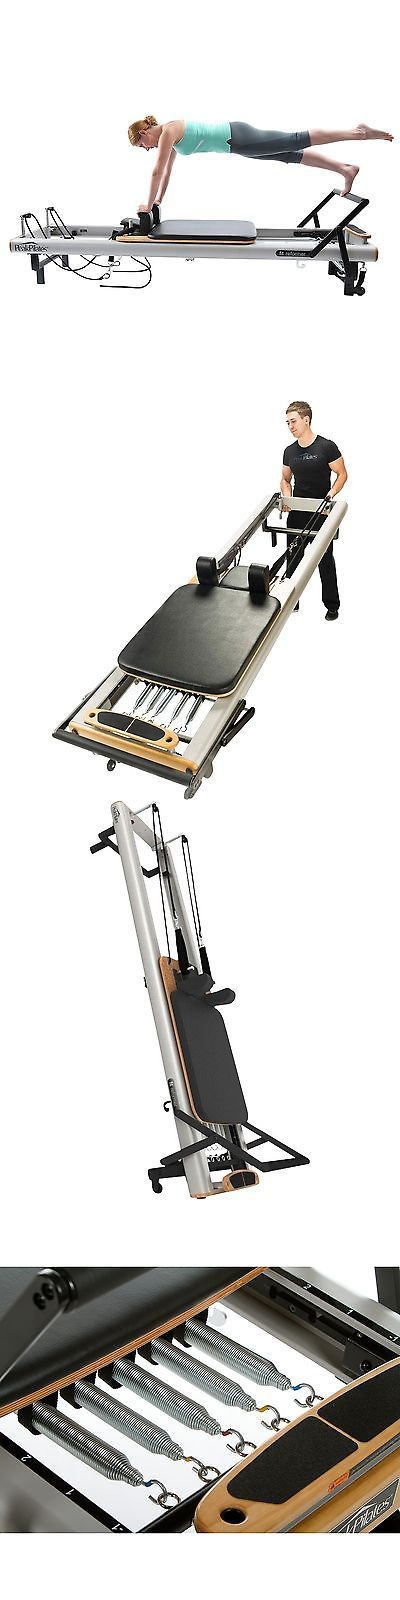 Other Yoga and Pilates 158930: Peak Pilates Fit Reformer Powder Coated Aluminum Frame, Studio Height -> BUY IT NOW ONLY: $2330 on eBay!